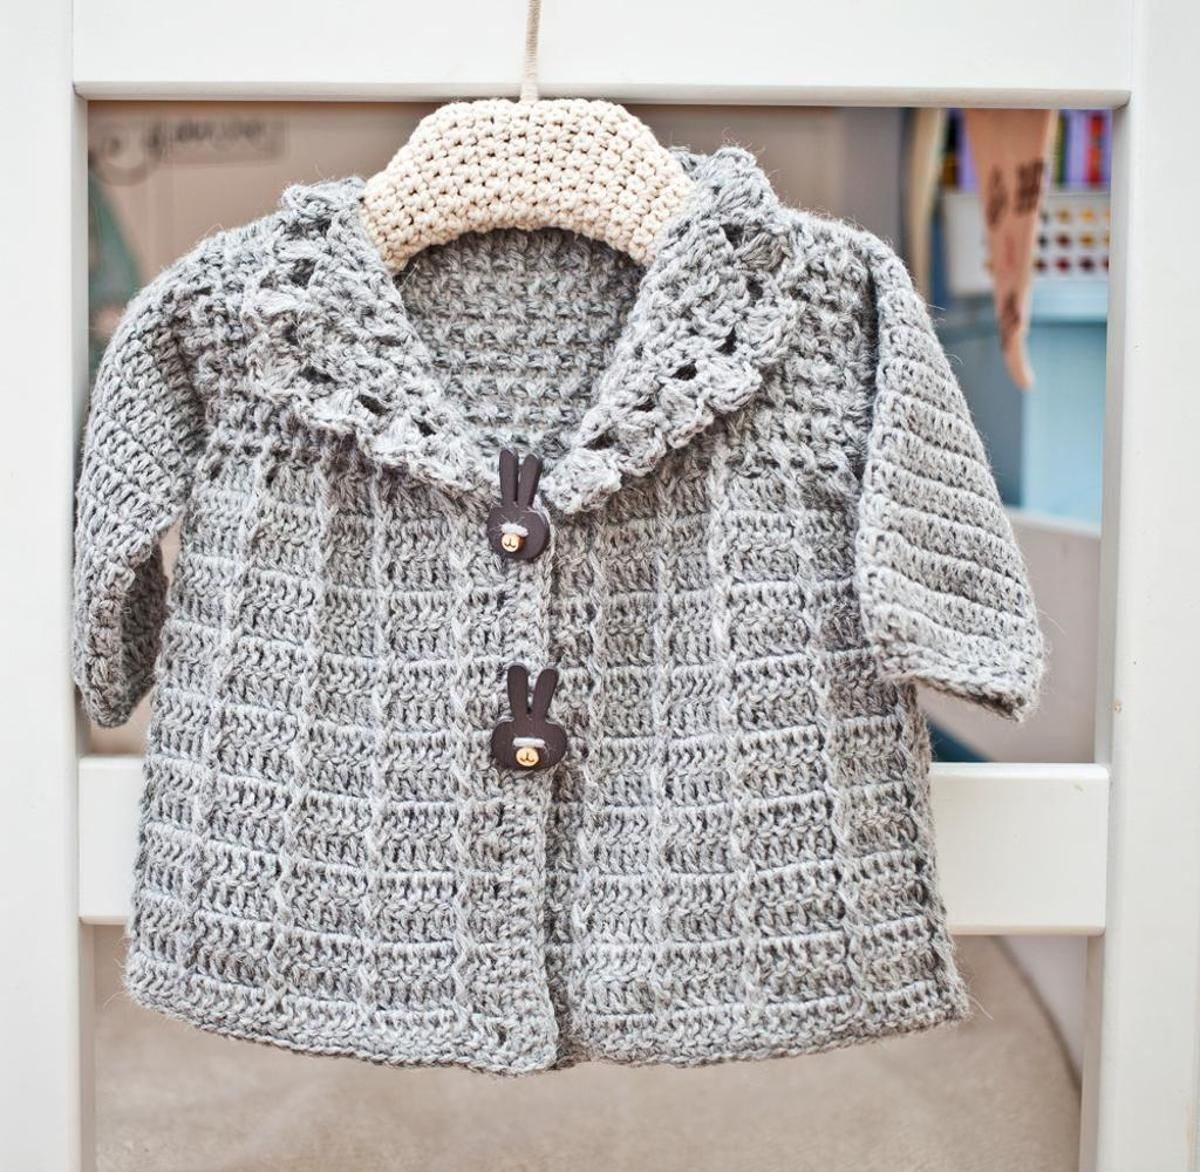 Crochet baby toddler jacket crochet baby crochet and babies crochet baby toddler jacket bankloansurffo Image collections